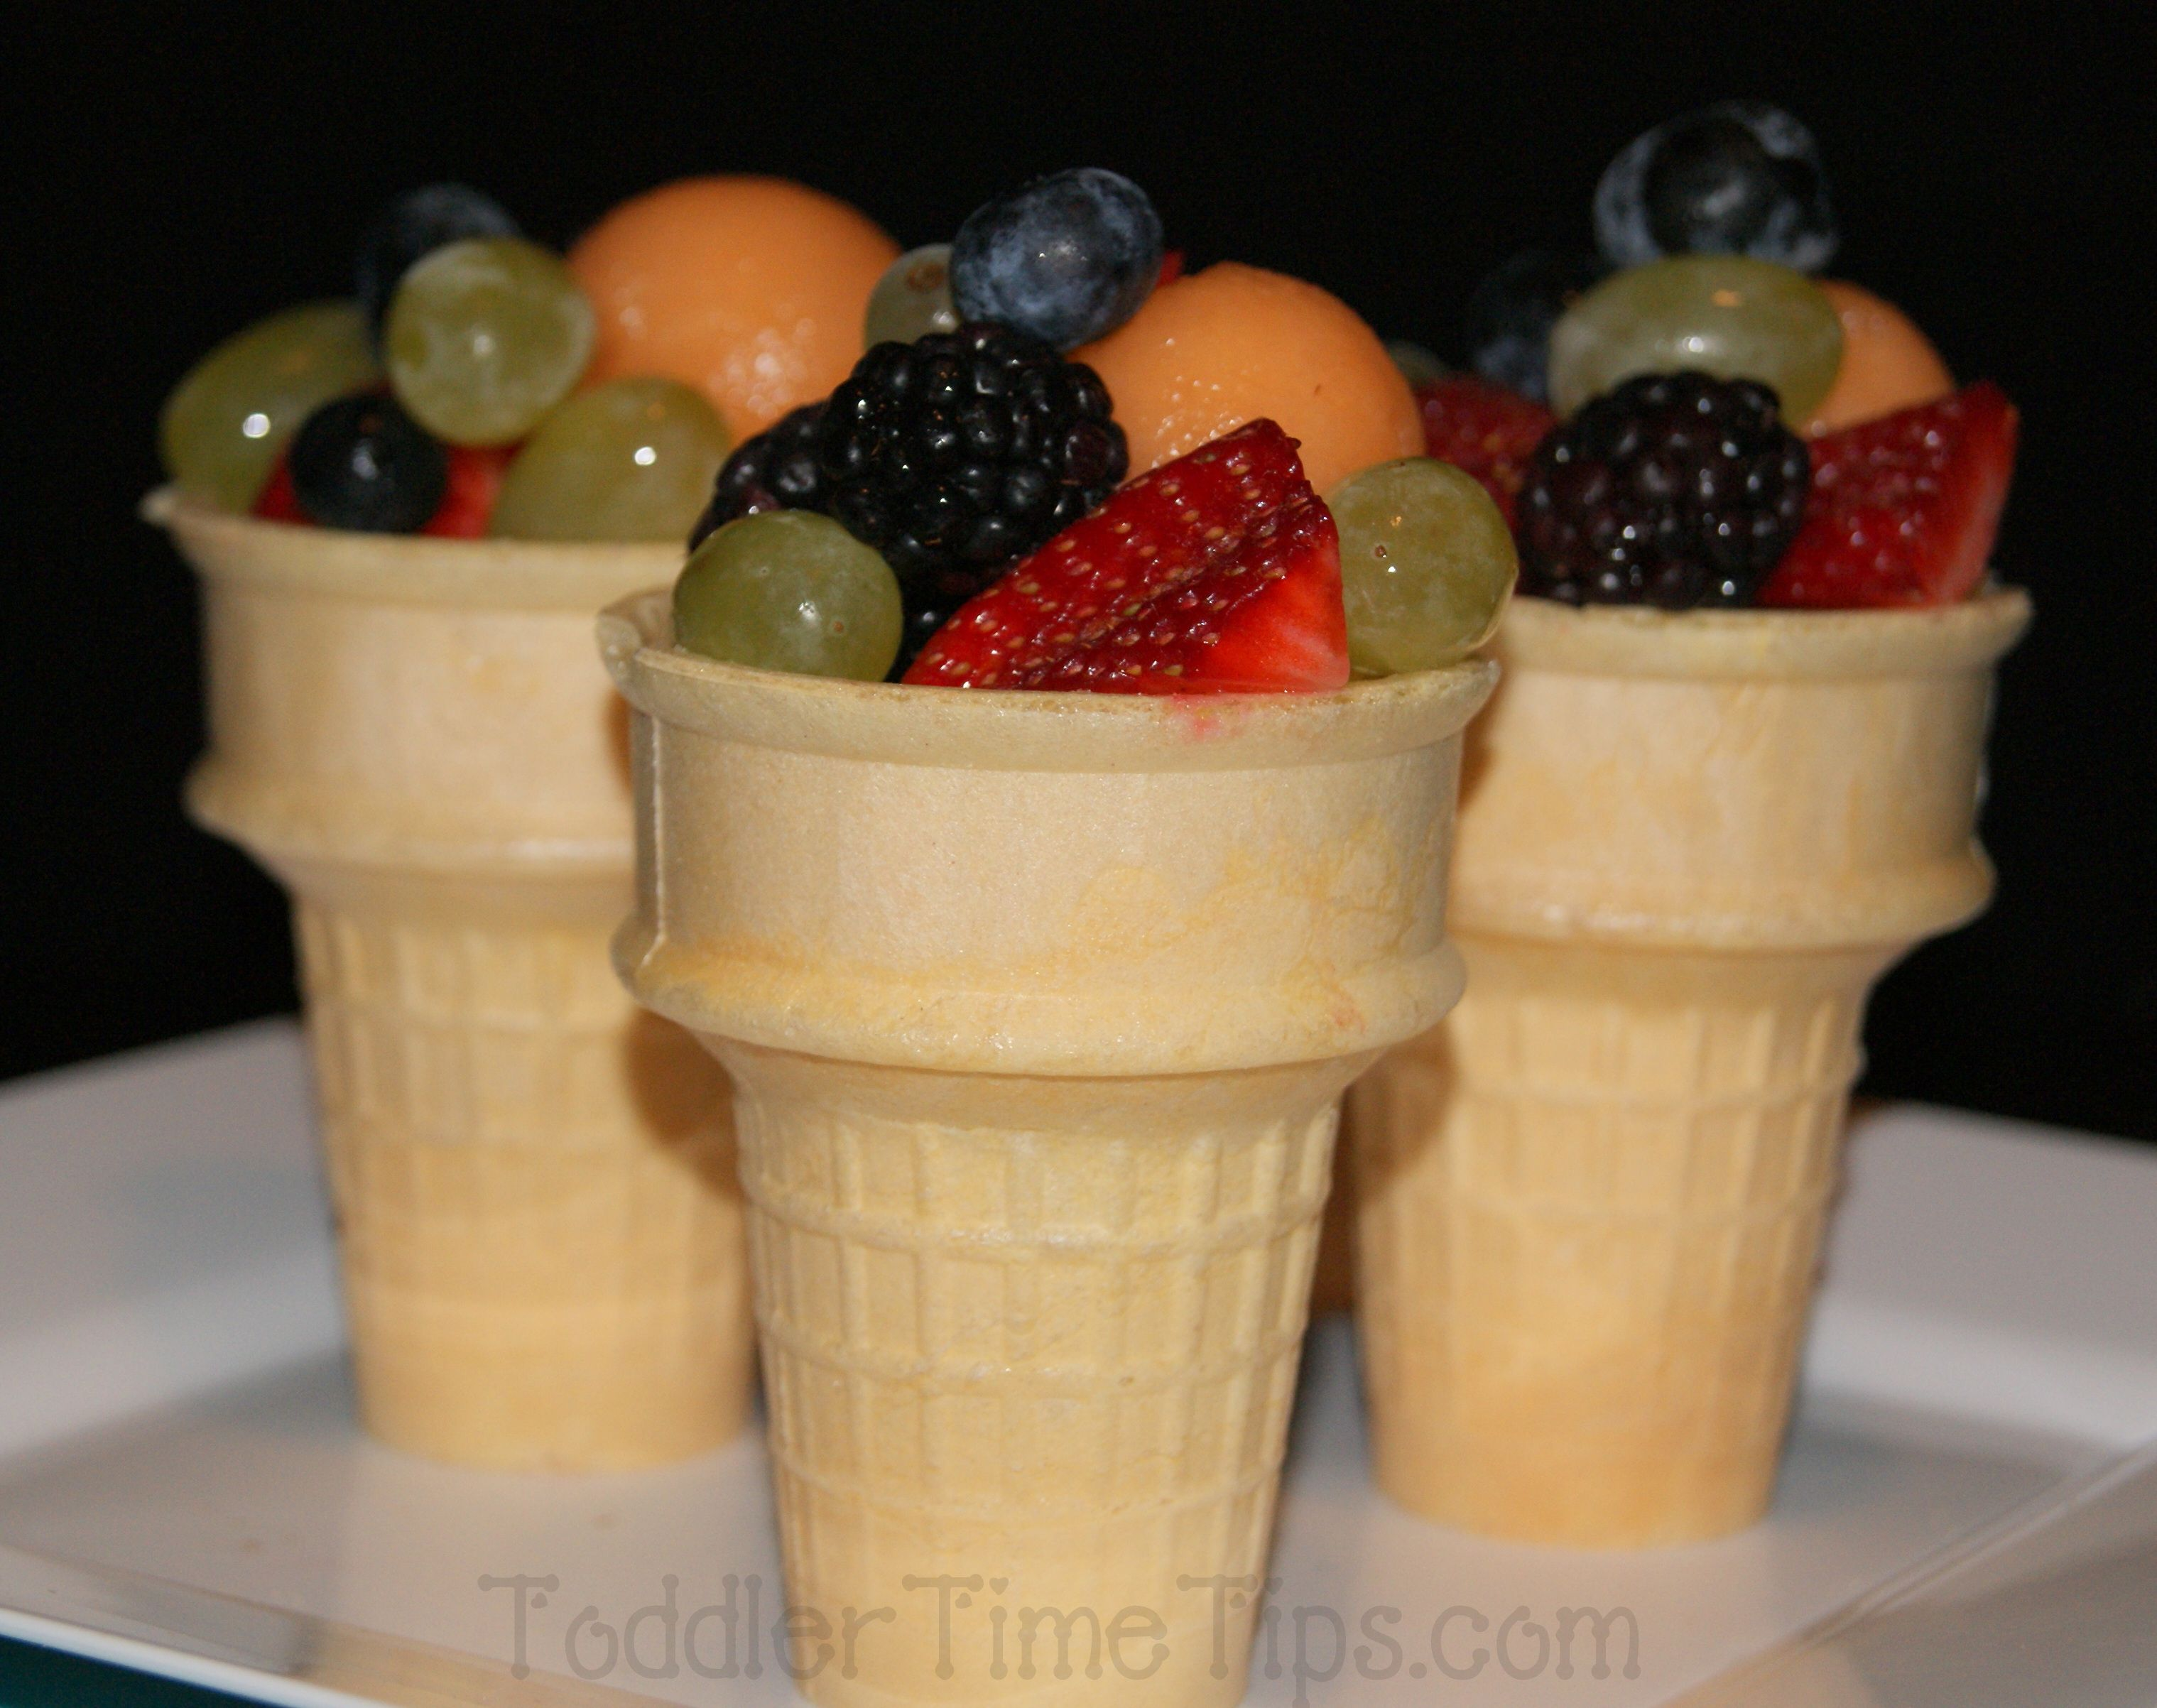 Healthy Snacks For More Pictures Look On Face Book